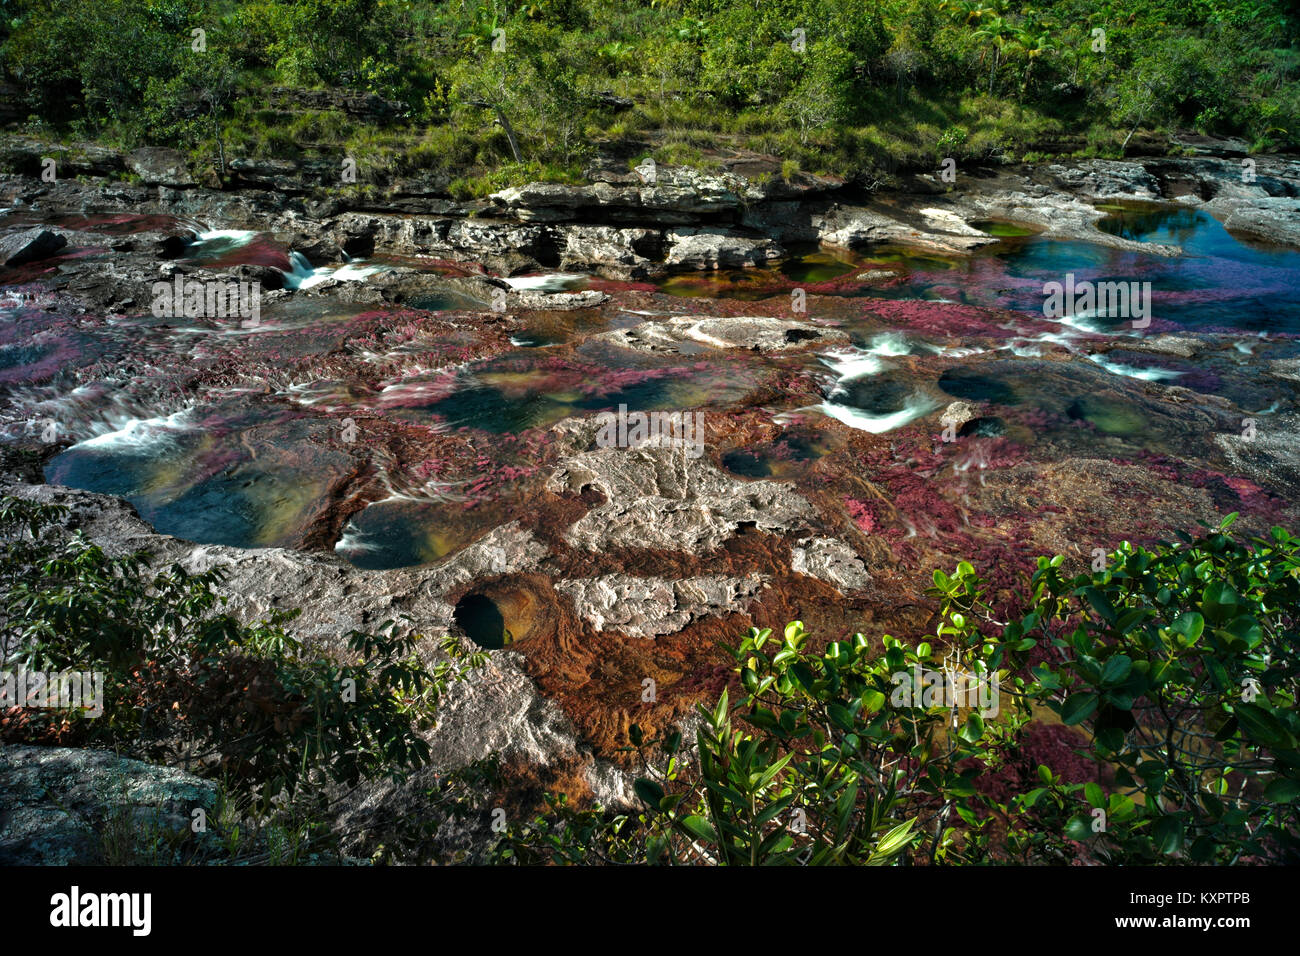 Colorful endemic freshwater plants known as macarenia clavigera create colorful natural tapestries at Los Ochos - Stock Image